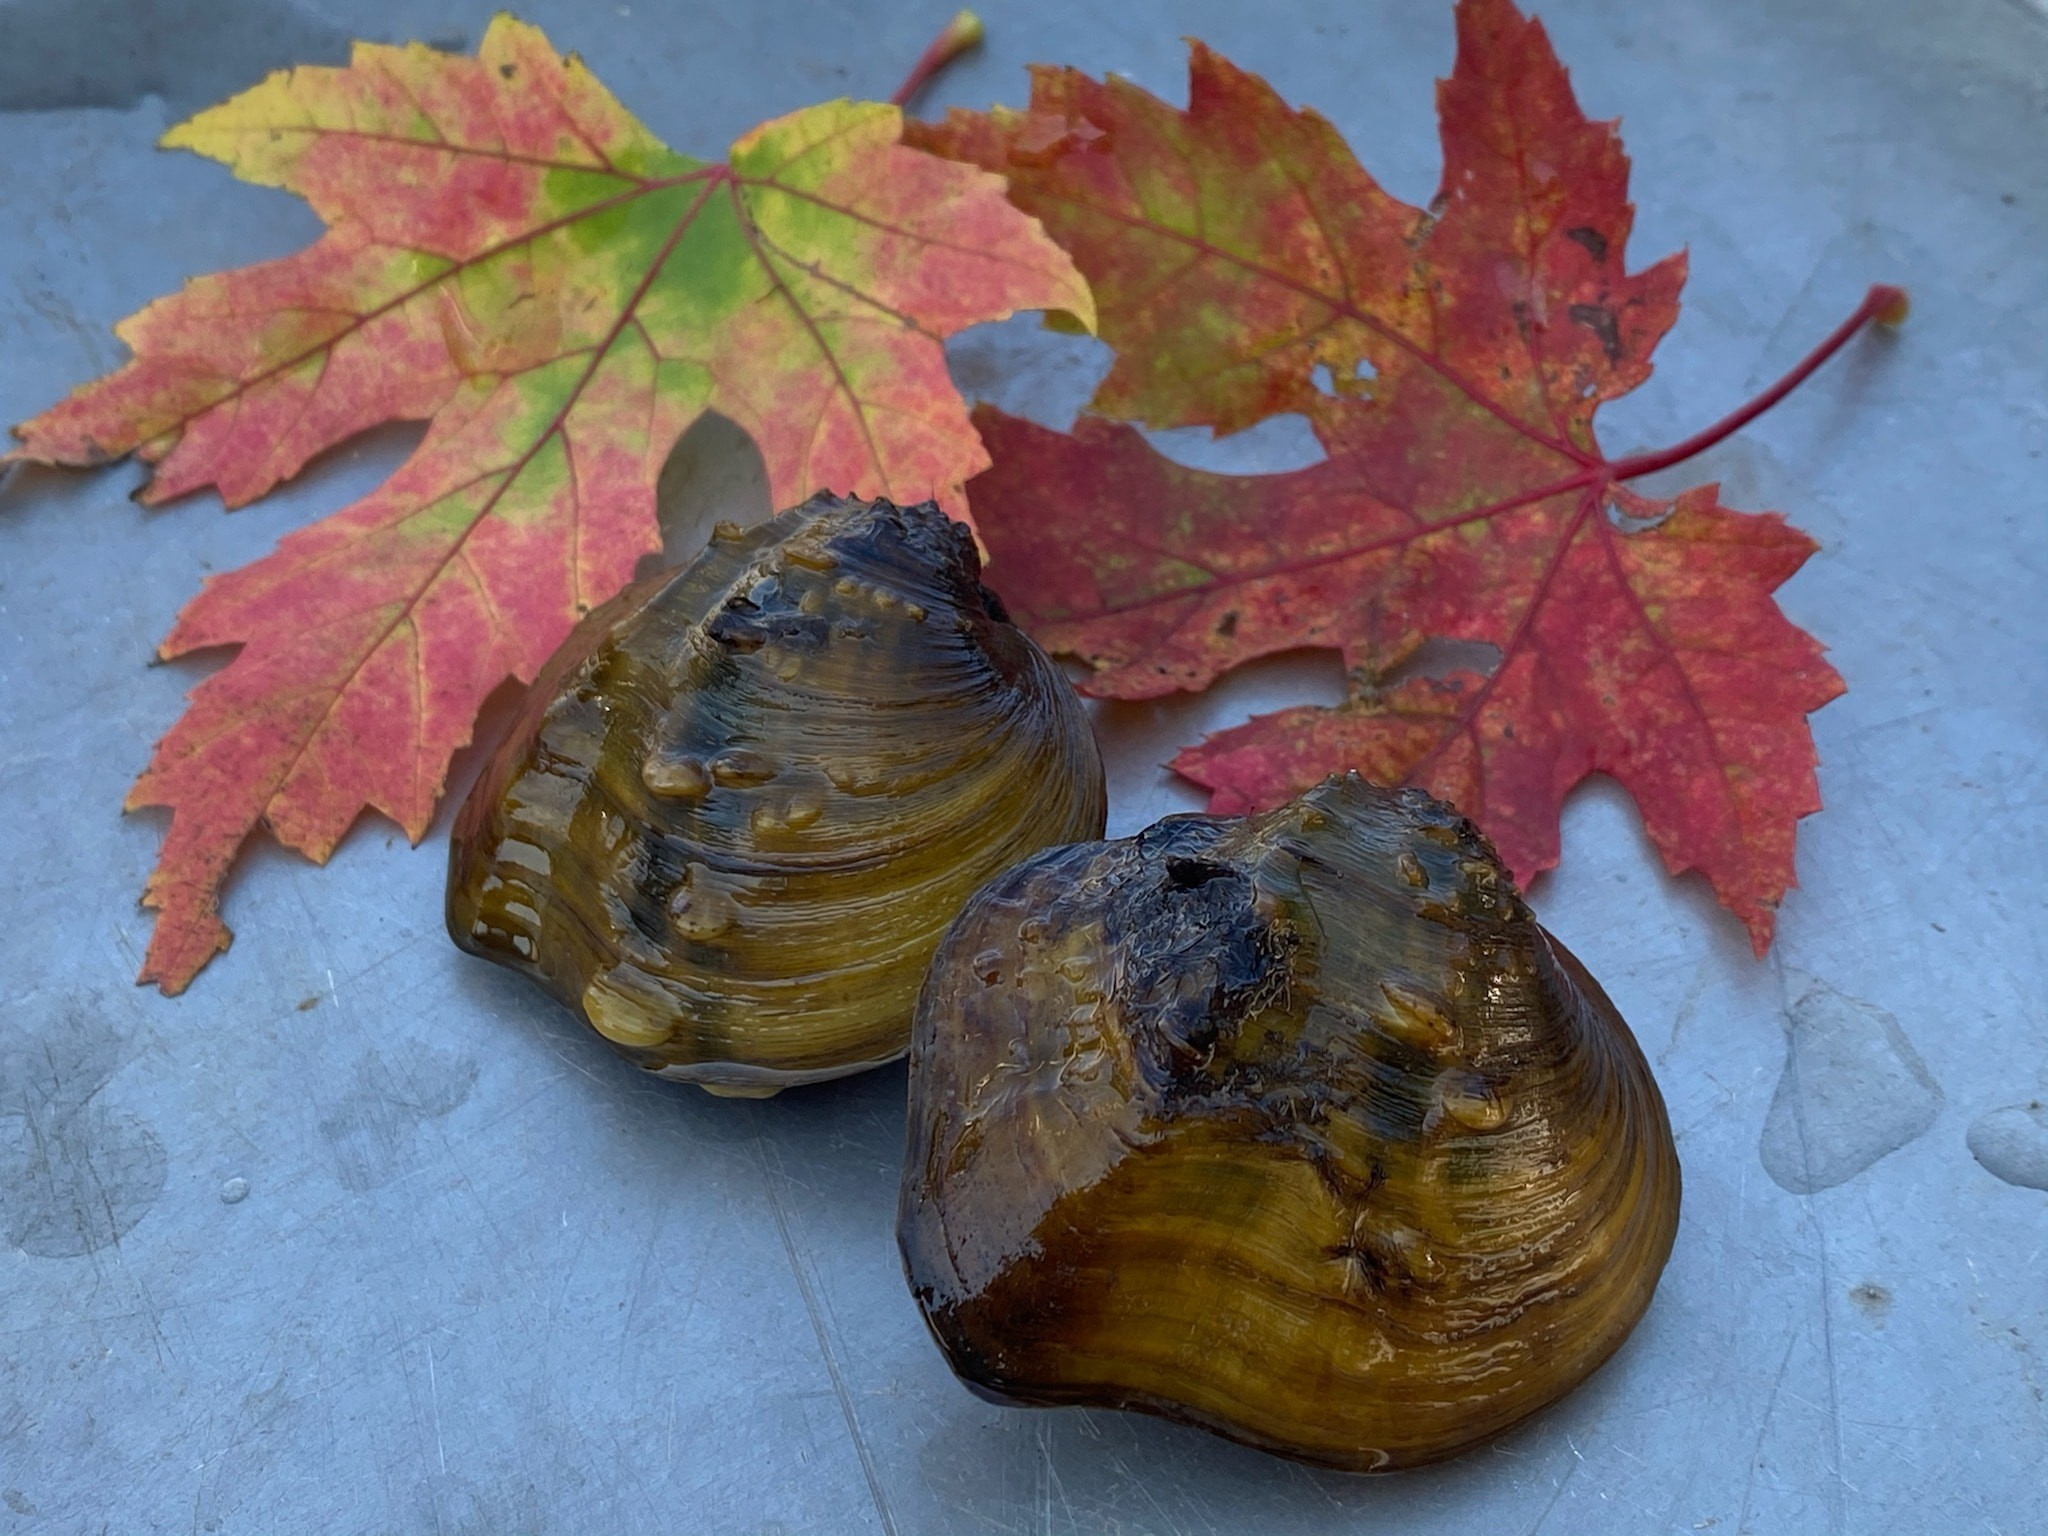 Two mussel on a flat surface surrounded by two red maple leaves.